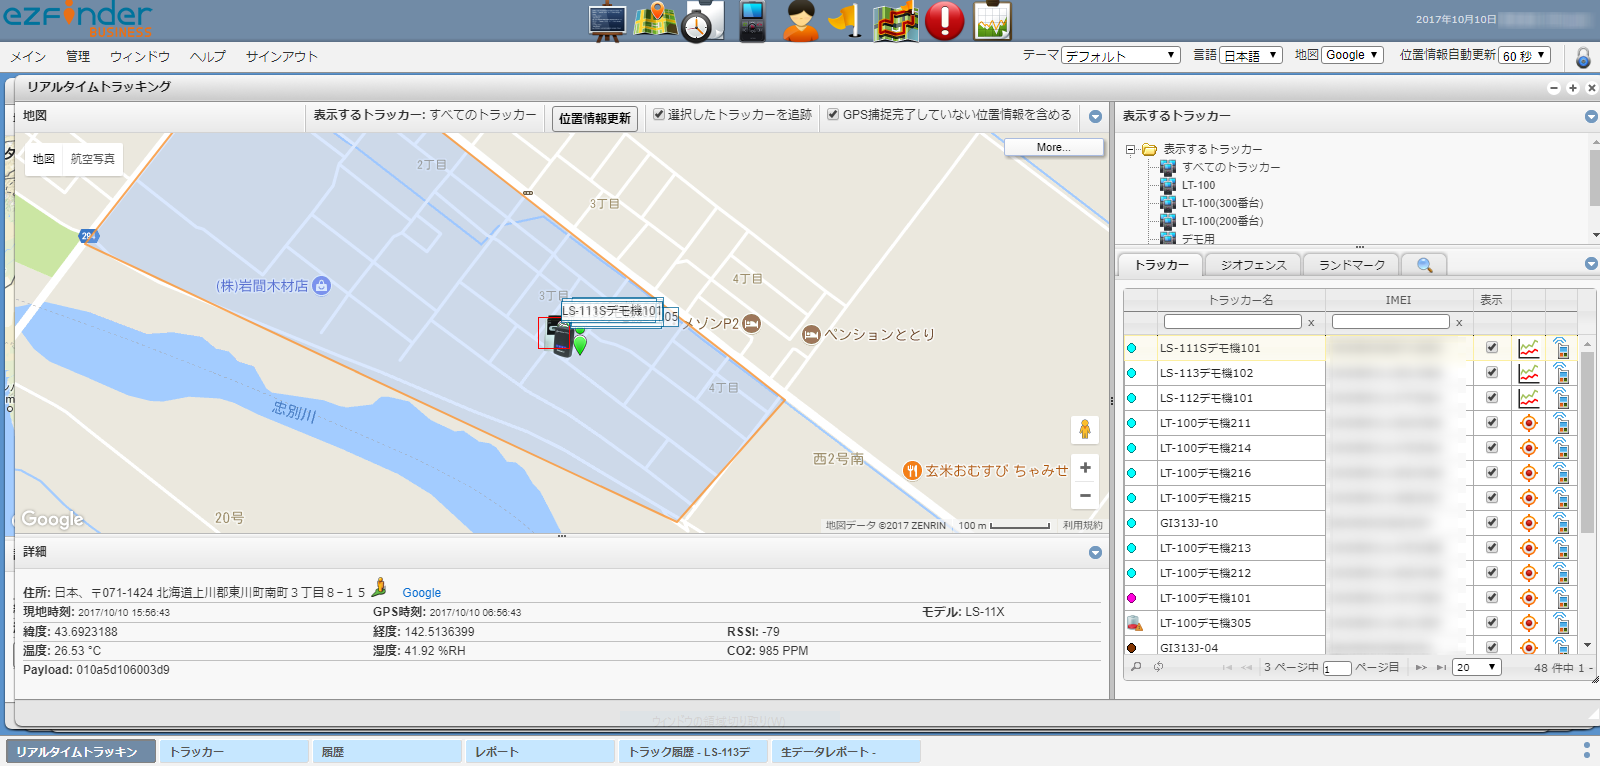 ezFinder BUSINESS画面